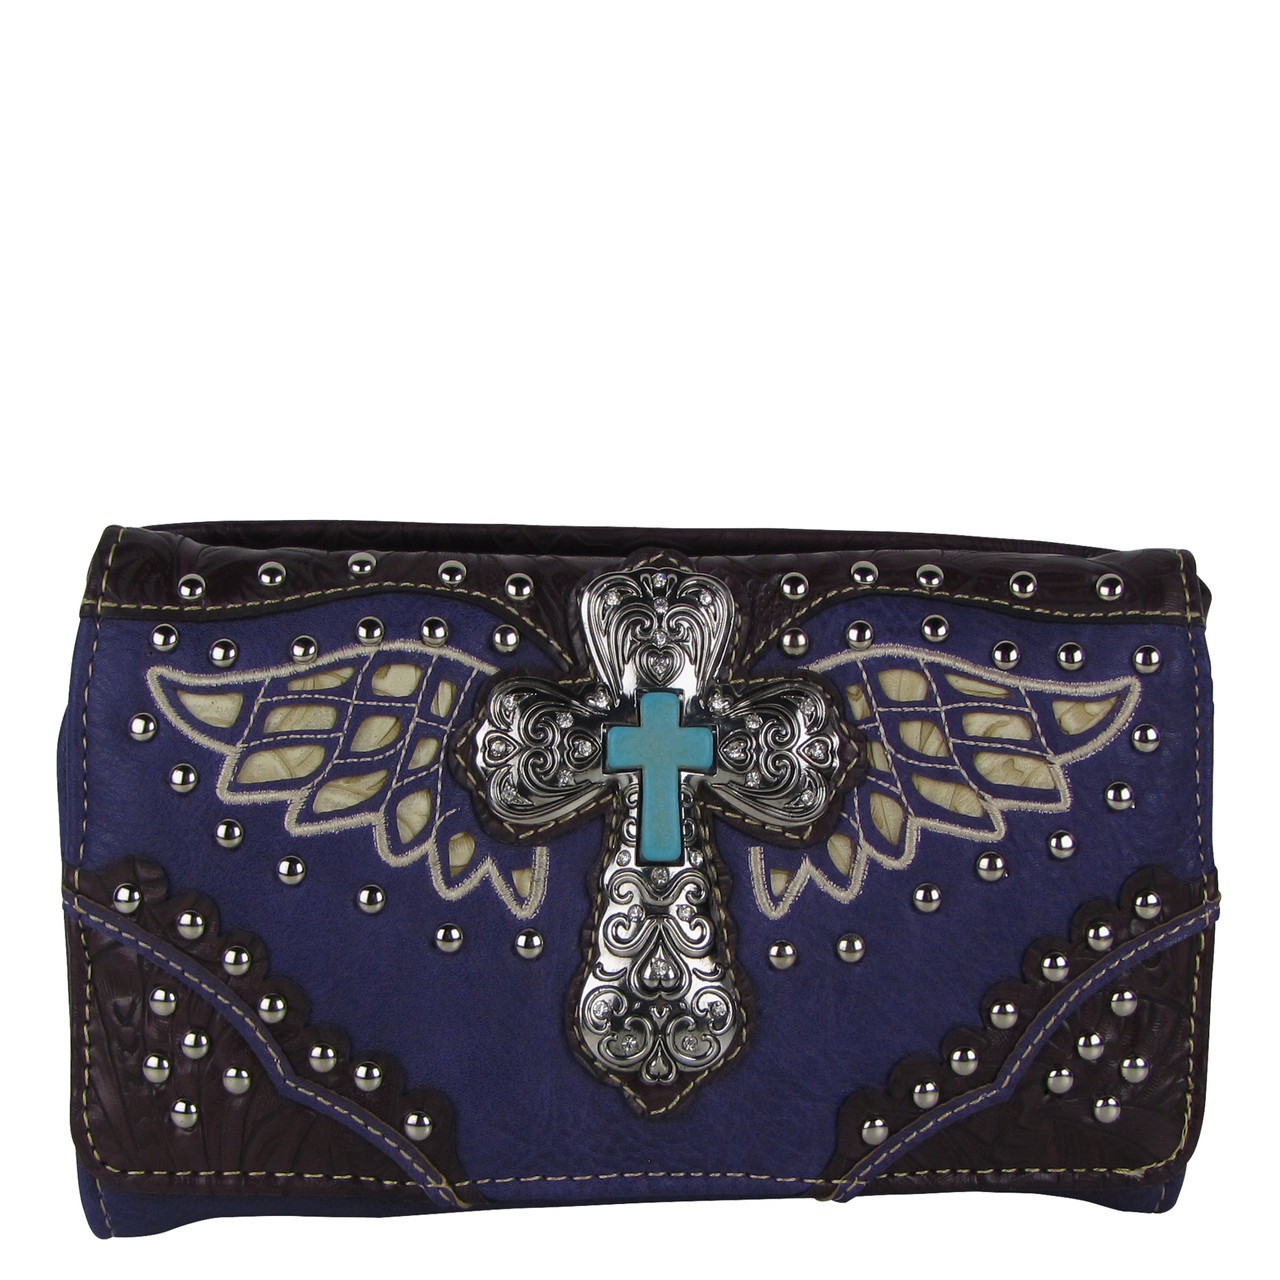 PURPLE WESTERN CROSS WITH WINGS LOOK CLUTCH TRIFOLD WALLET CW1-1278PPL